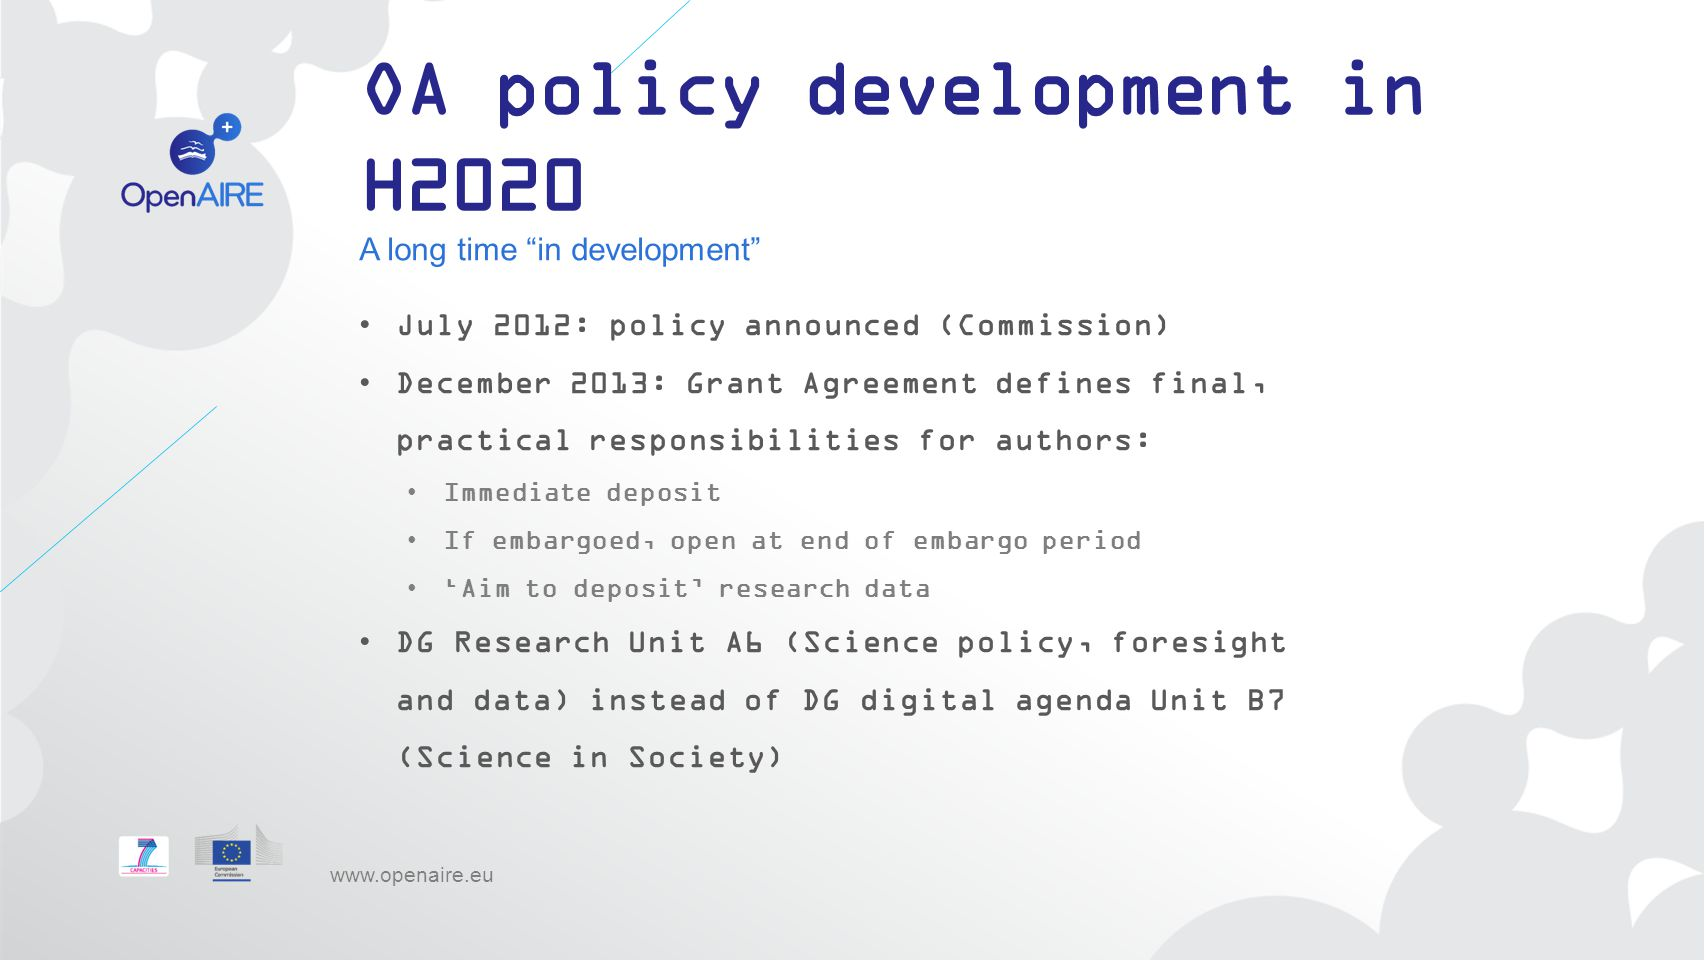 OA policy development in H2020